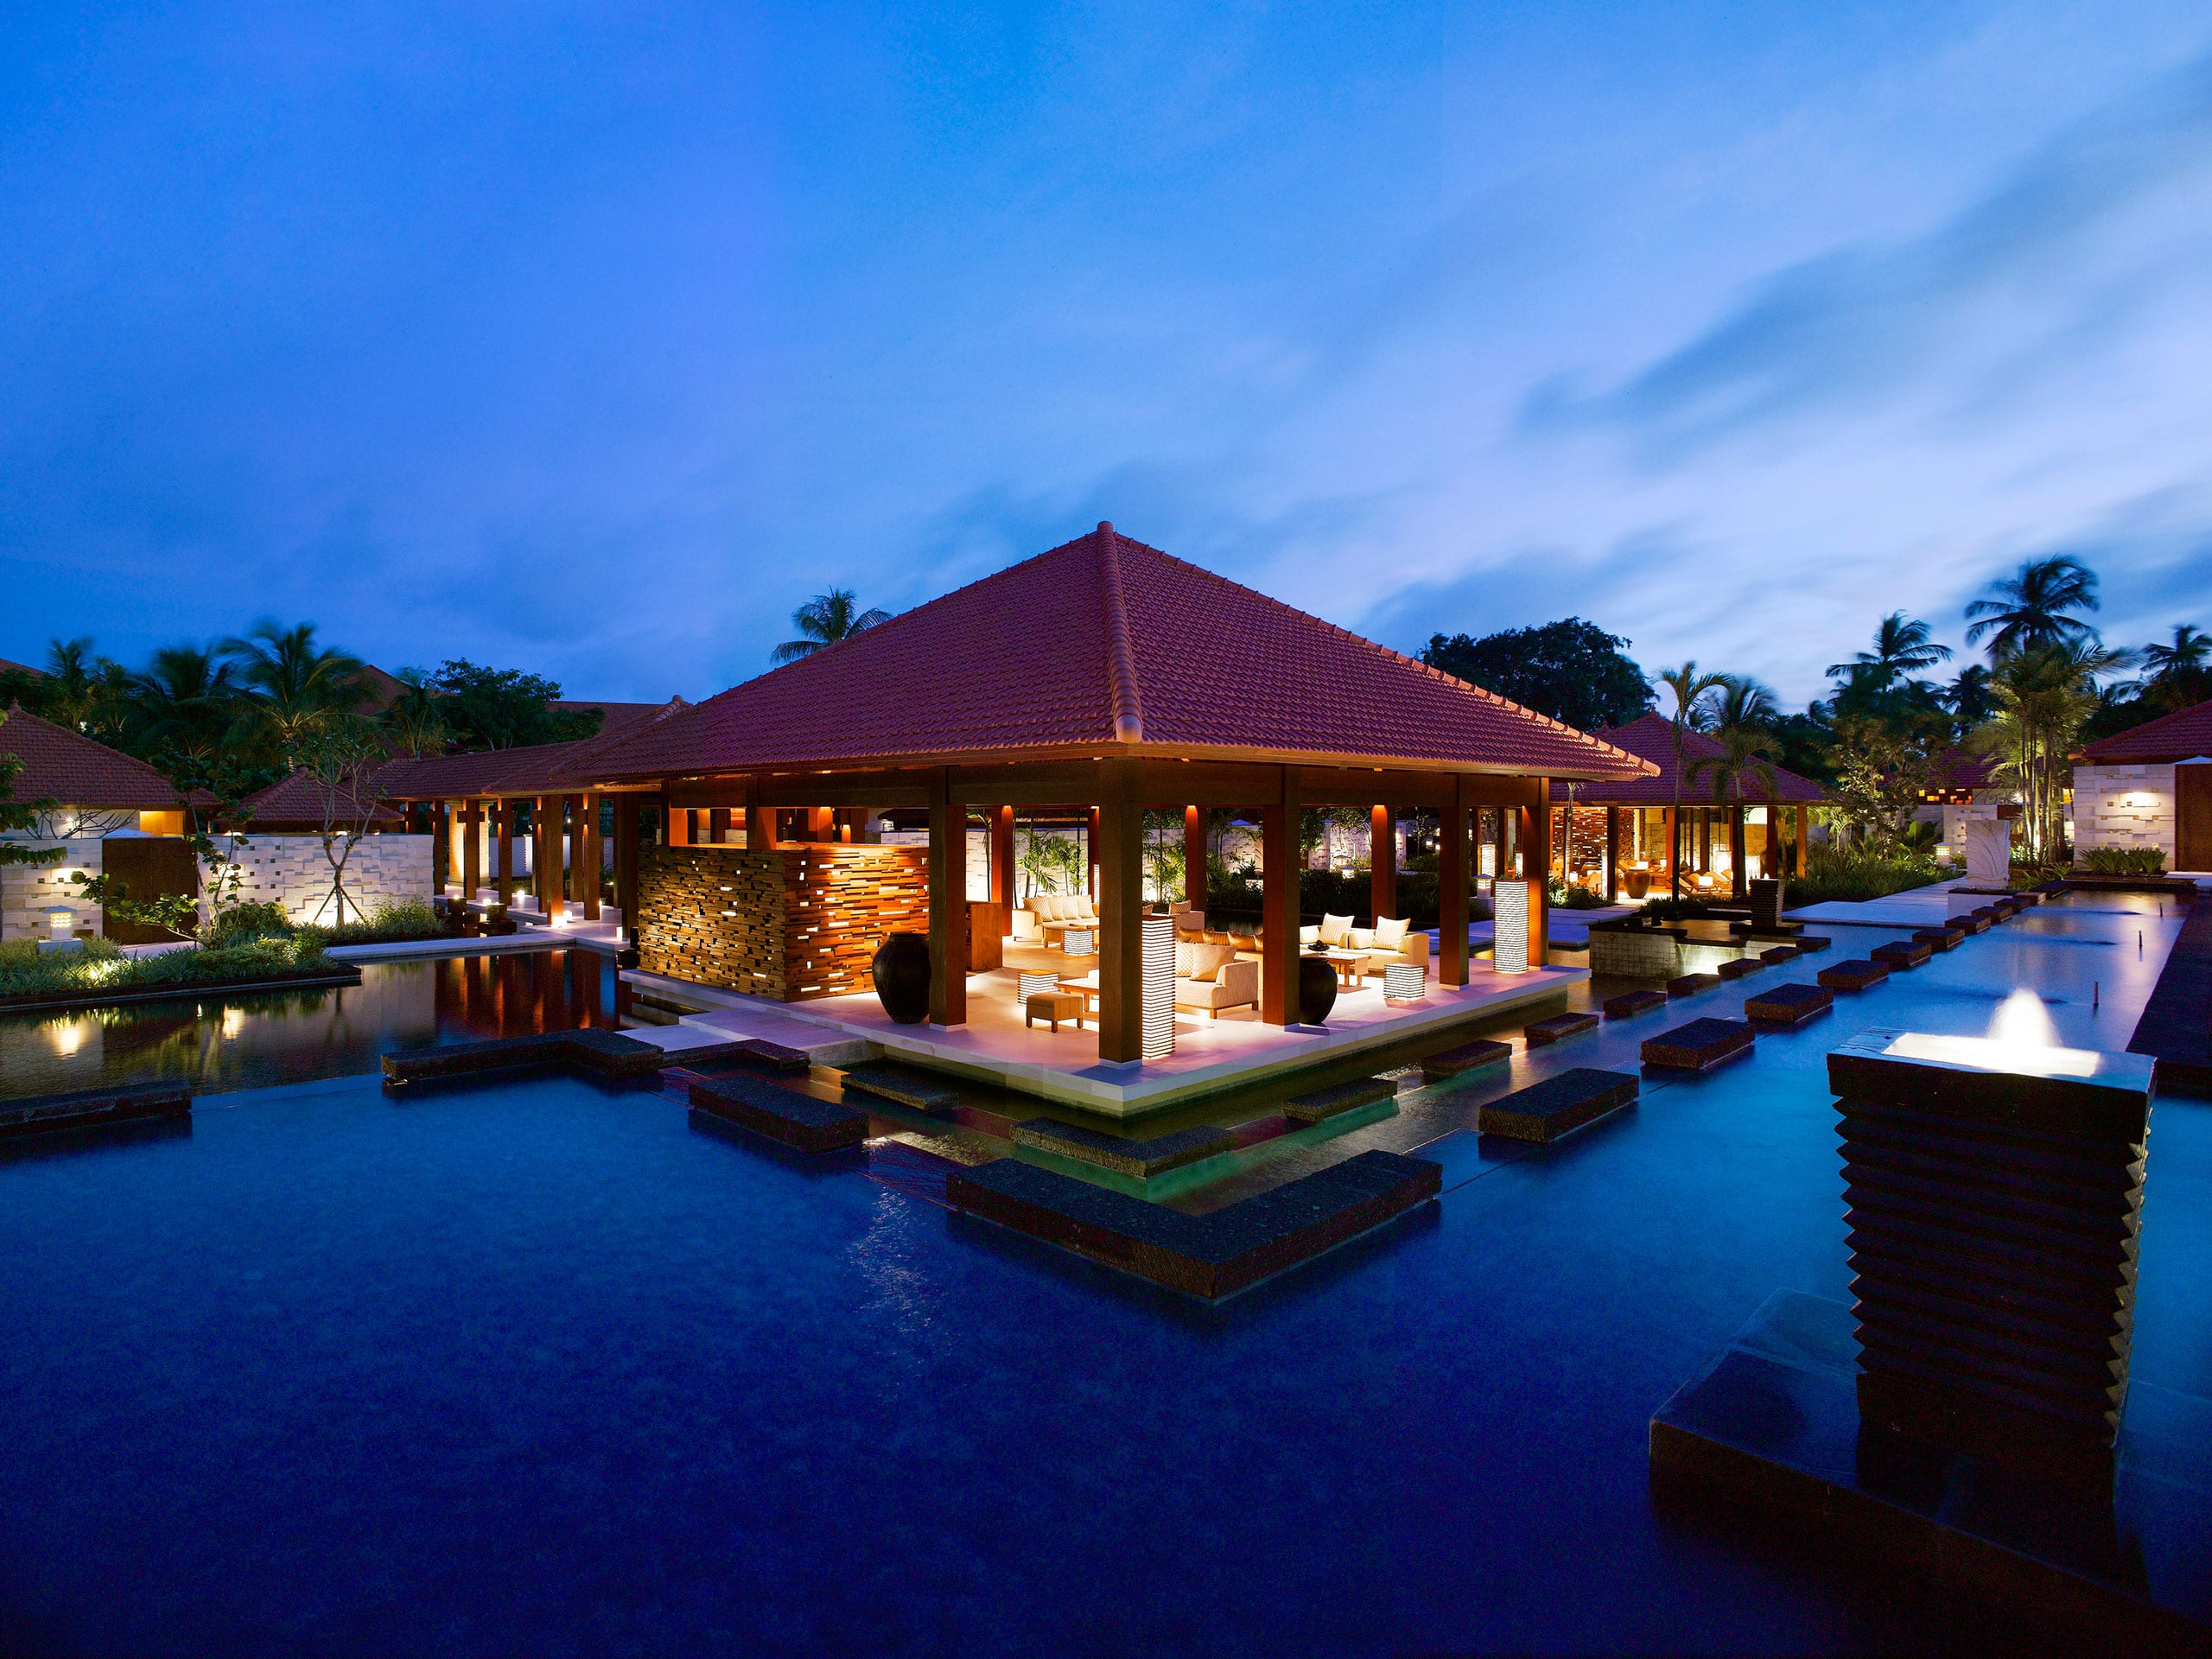 Voucher Hotel Intercontinental Bali Resort Jimbaran 5 Star Hotels Nusa Dua Indonesia Grand Hyatt